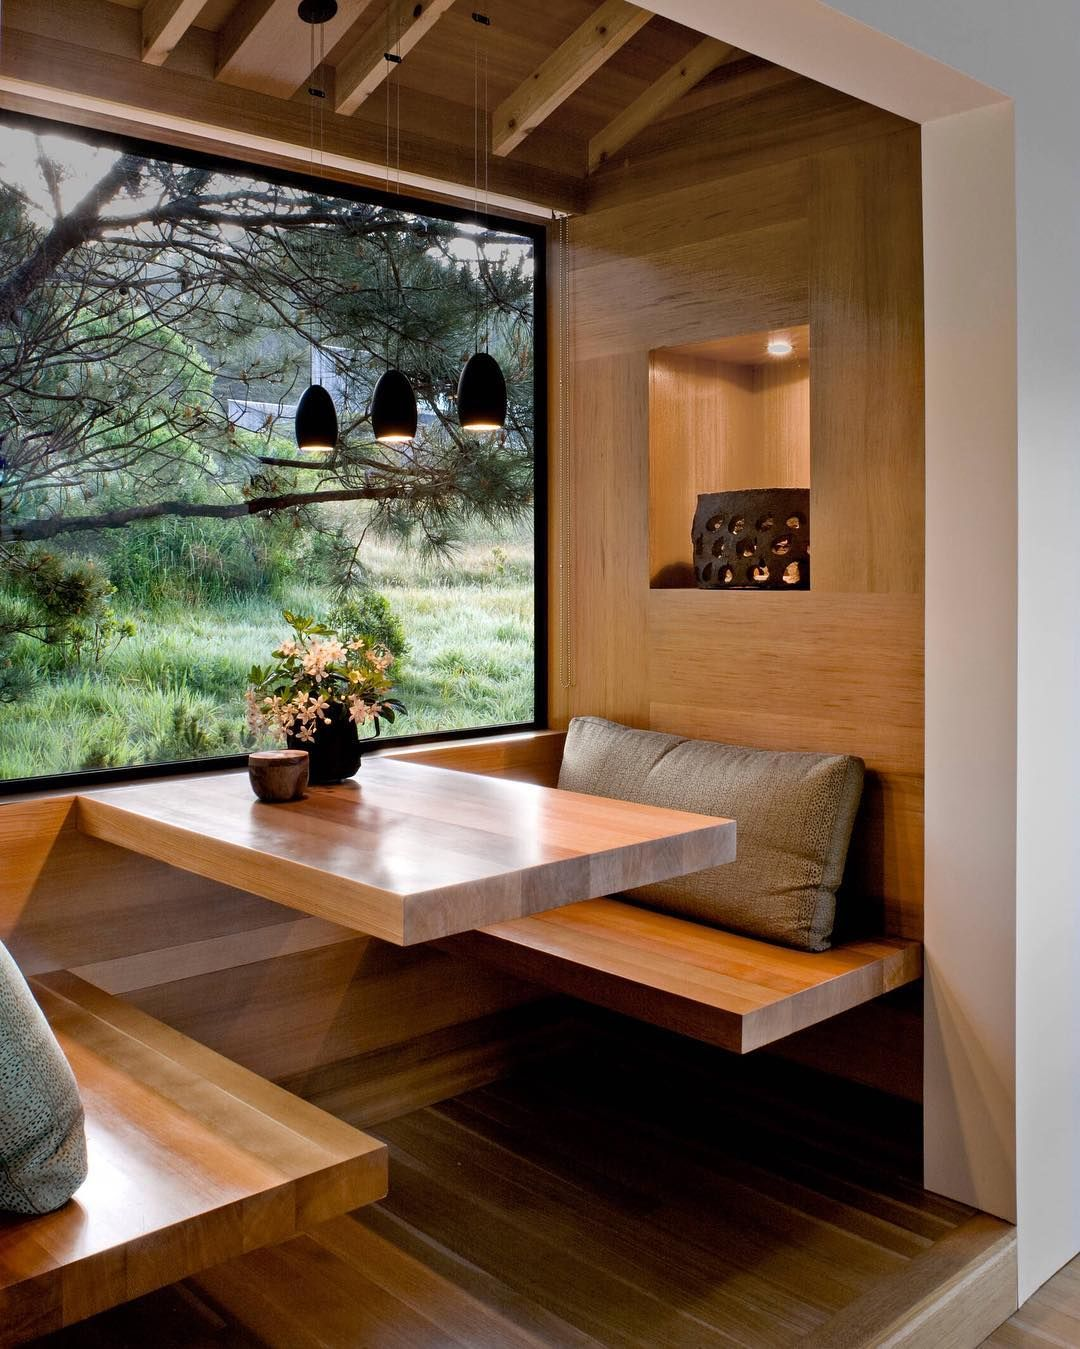 Japanese Inspired Room Design This North Californian Home Features A Modern Cedar Breakfast Nook